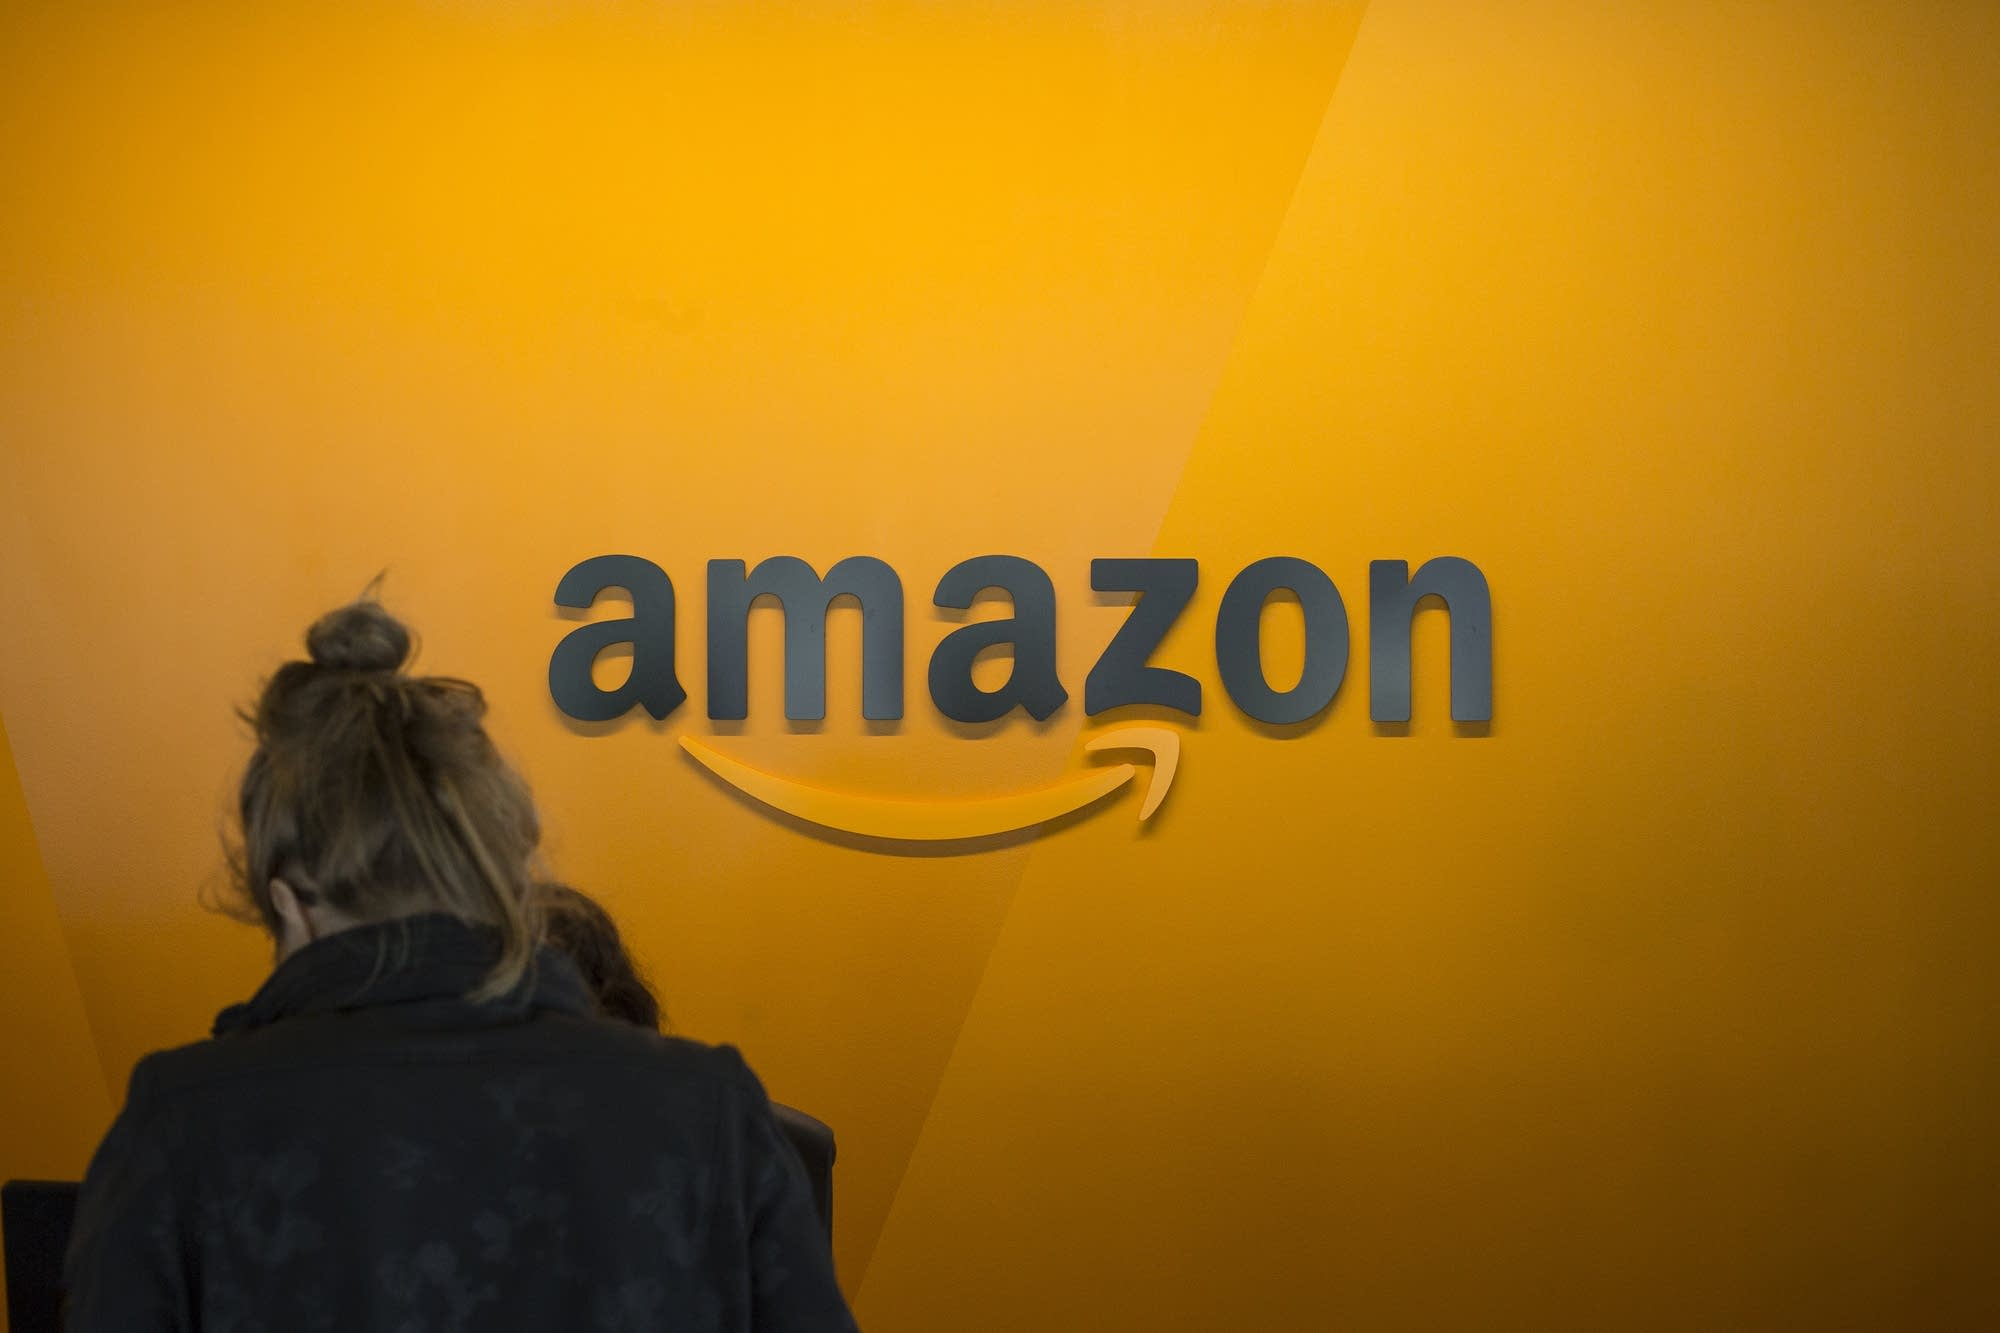 Amazon grows its workforce in BC adding 3000 new jobs